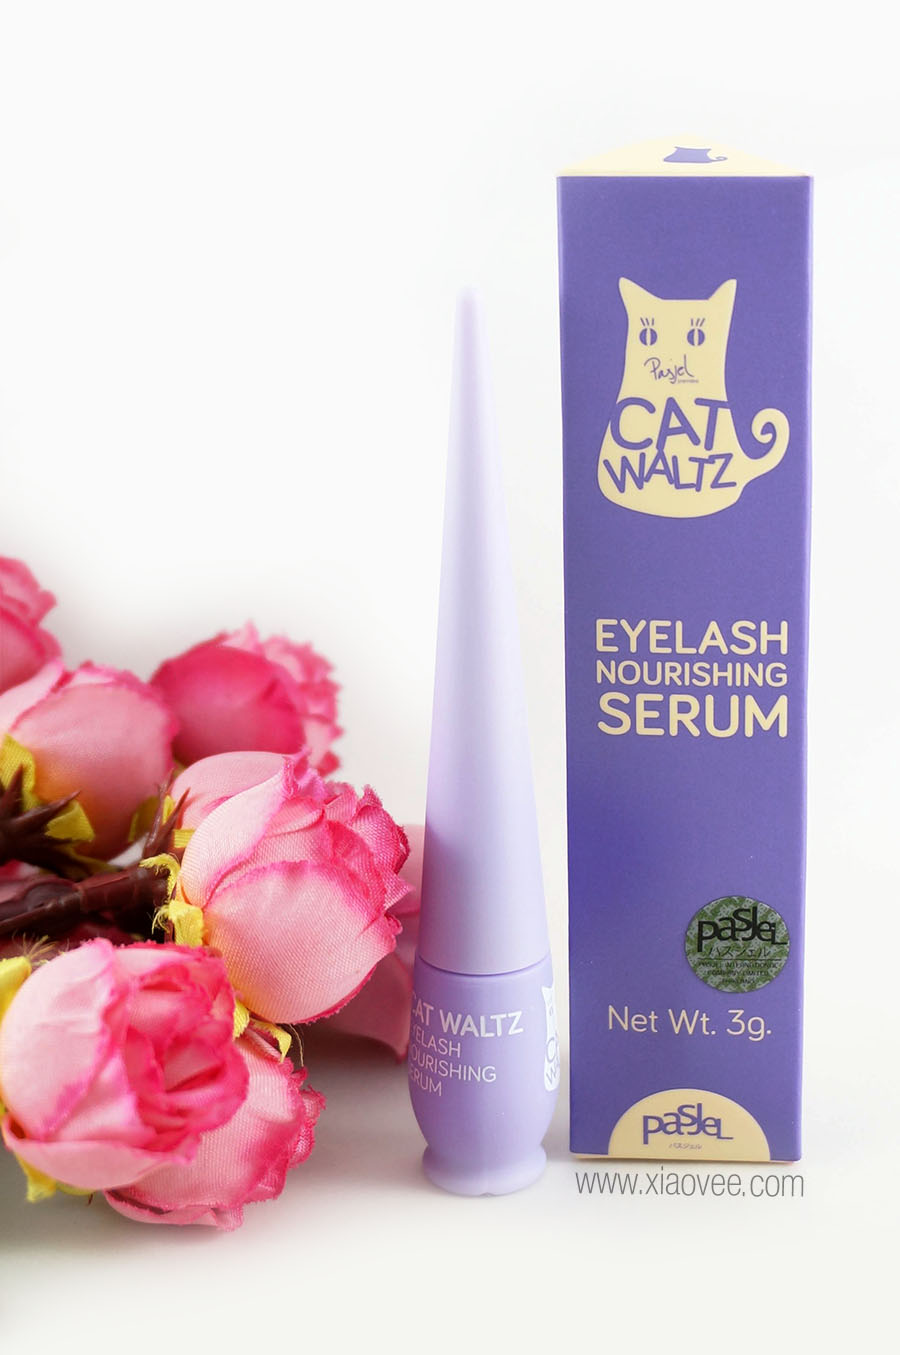 Pasjel Catwaltz Eyelash Nourishing Serum Review, Pasjel Cat Waltz Eyelash, Thailand Eyelash Serum